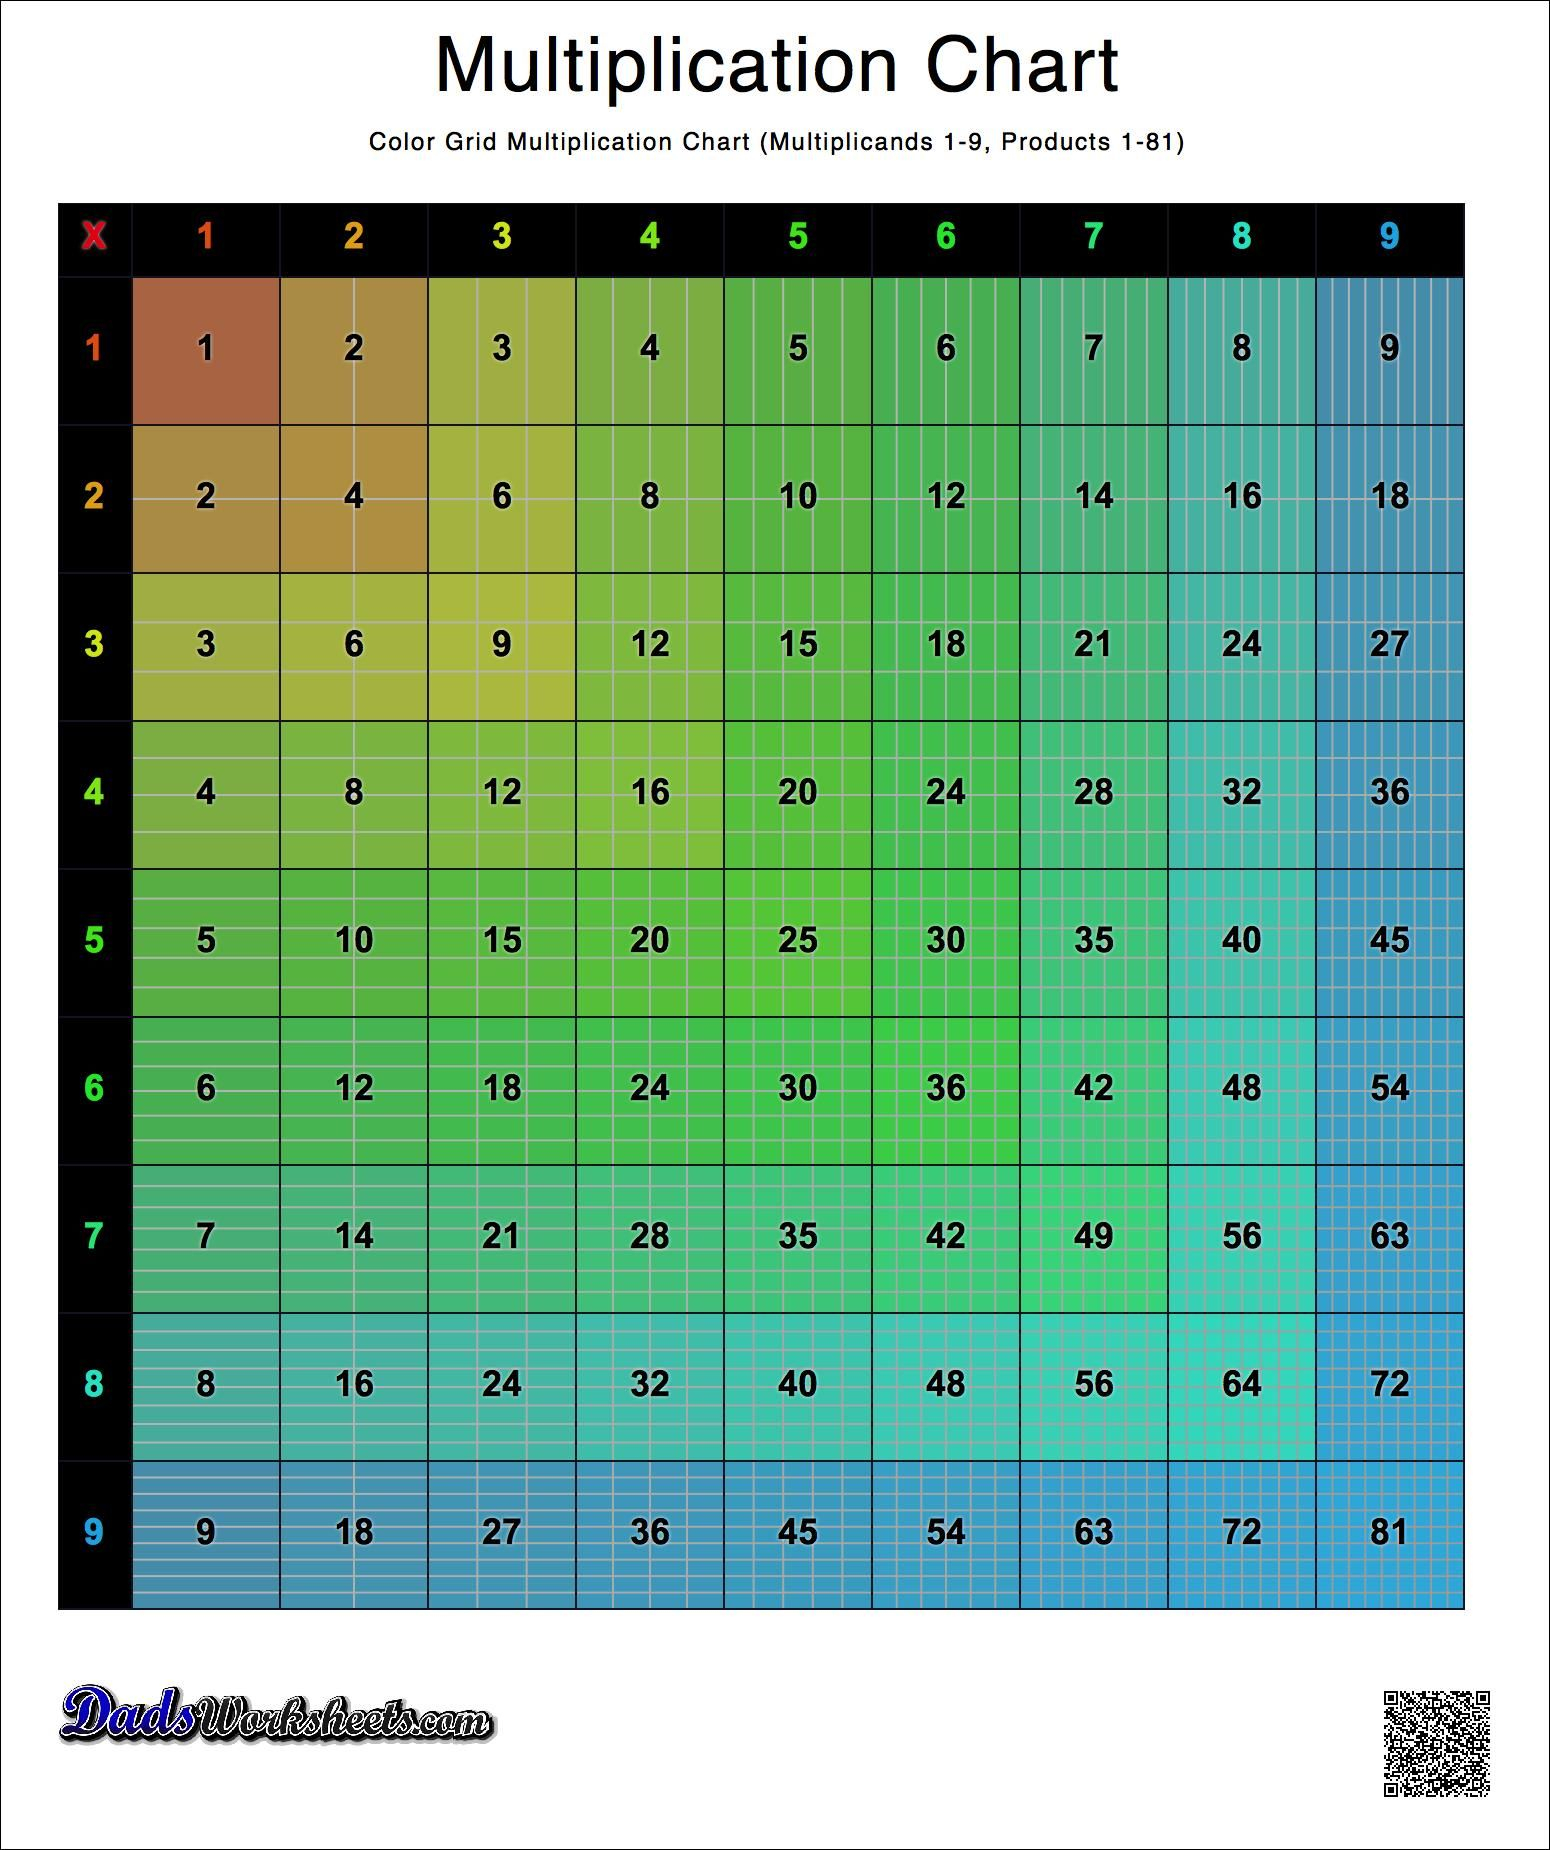 Colored Grid Multiplication Chart, Versions With 1-9, 1-10